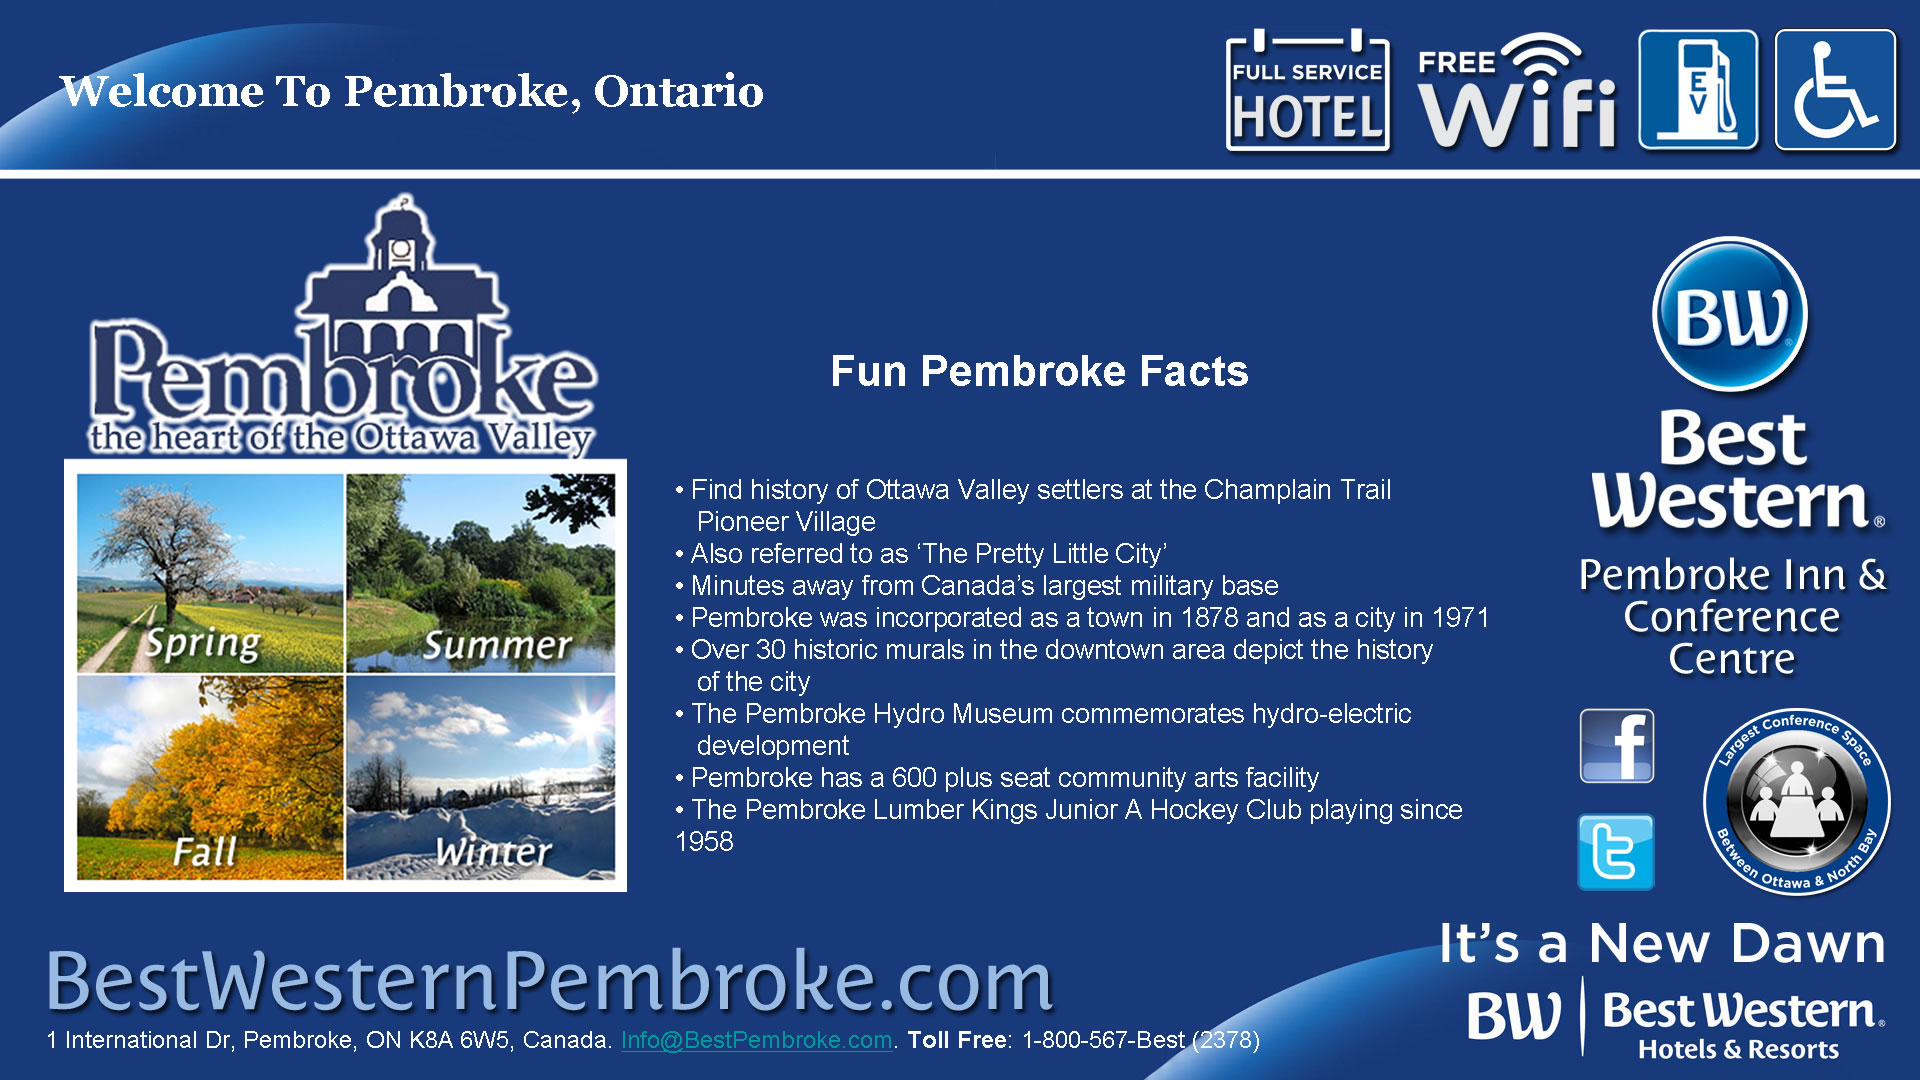 Pembroke is The Heart of The Ottawa Valley